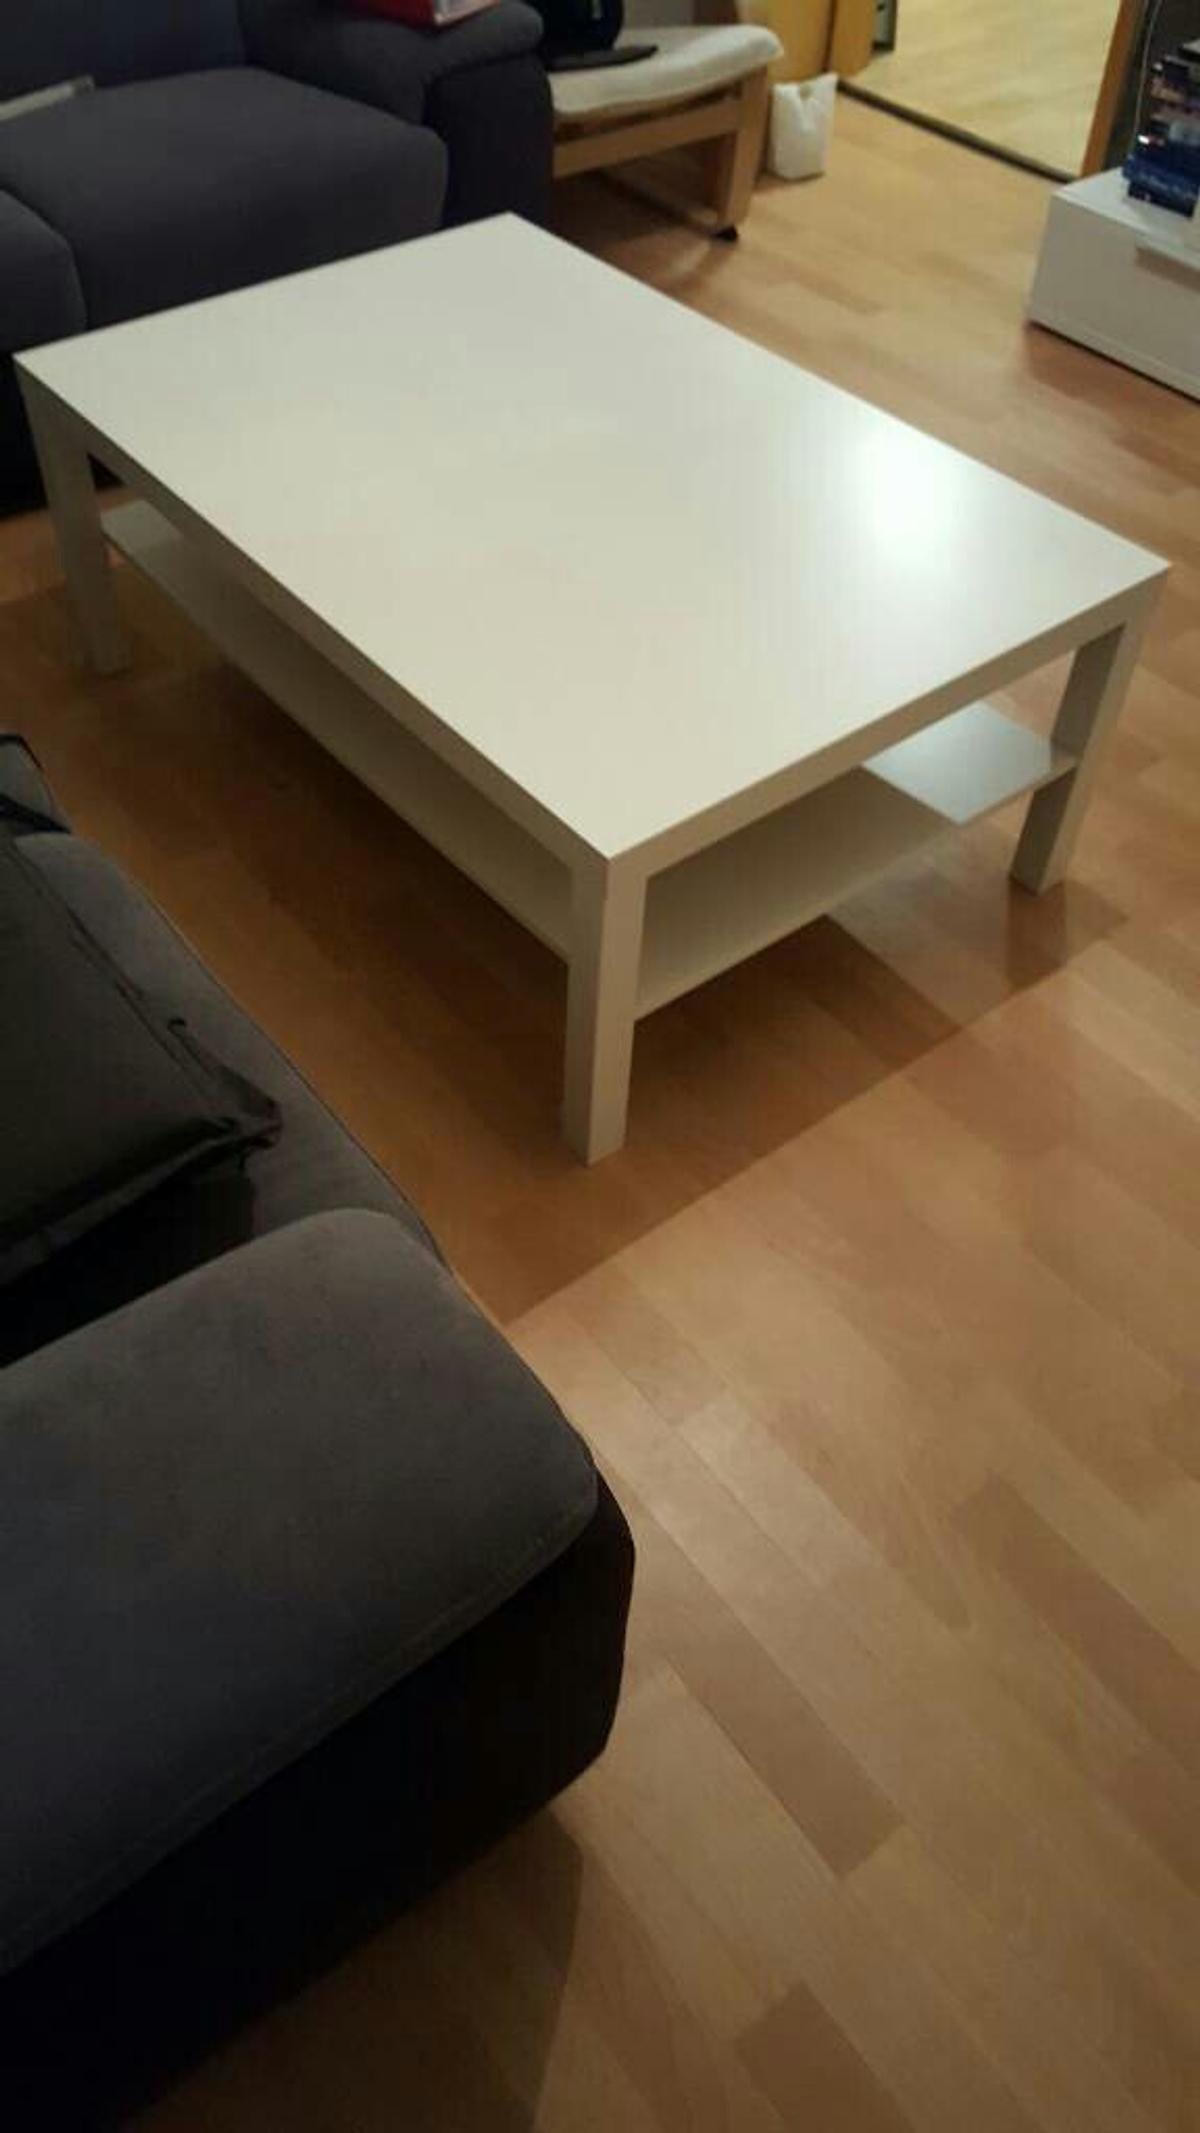 Ikea Lack Couchtisch Weiß In 56564 Neuwied For 15 00 For Sale Shpock